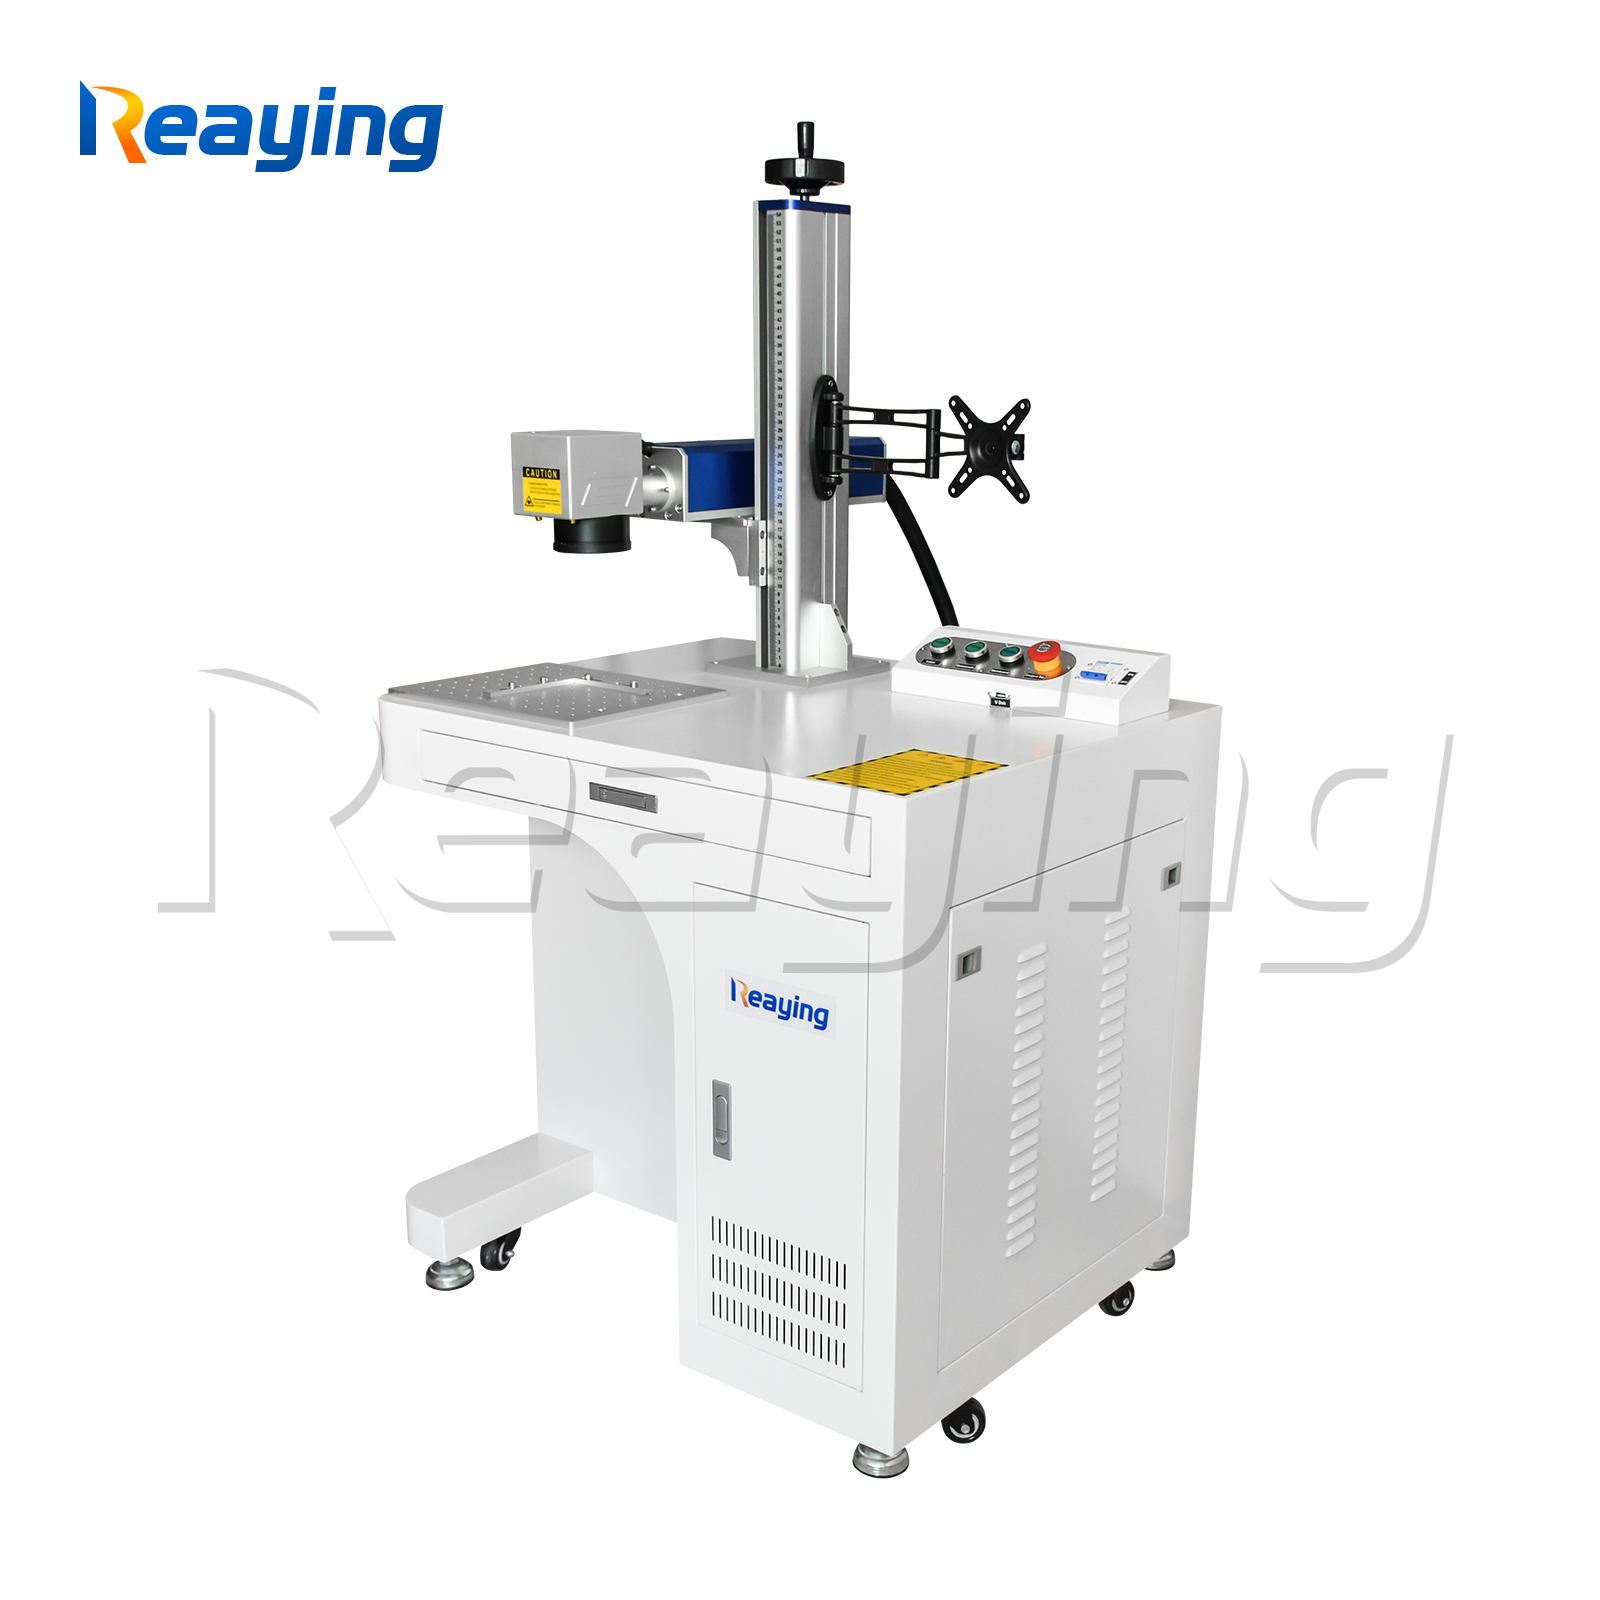 Reaying 50 watt fiber laser marking machine with Raycus laser source for metal nonmetal engraving